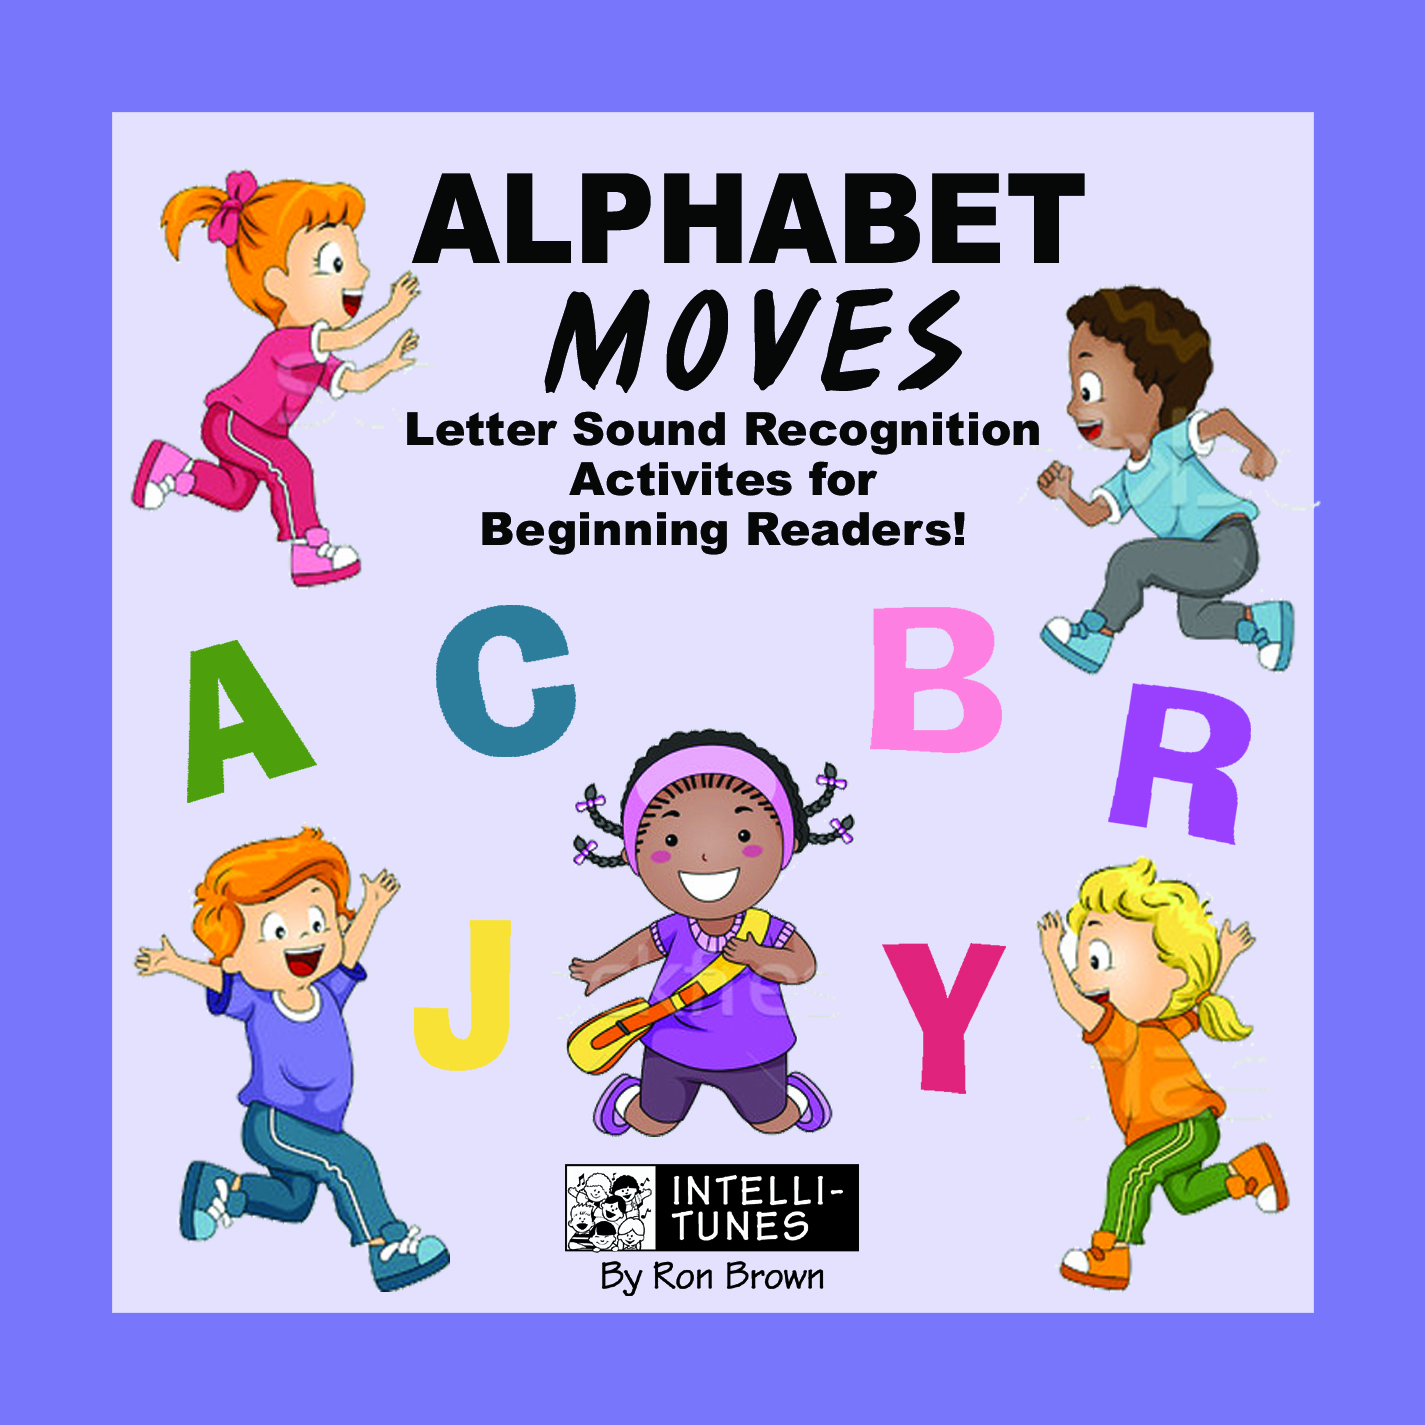 Worksheet How To Teach Phonics To Kids At Home alphabet phonics songs for educational childrens music moves album download with lyrics